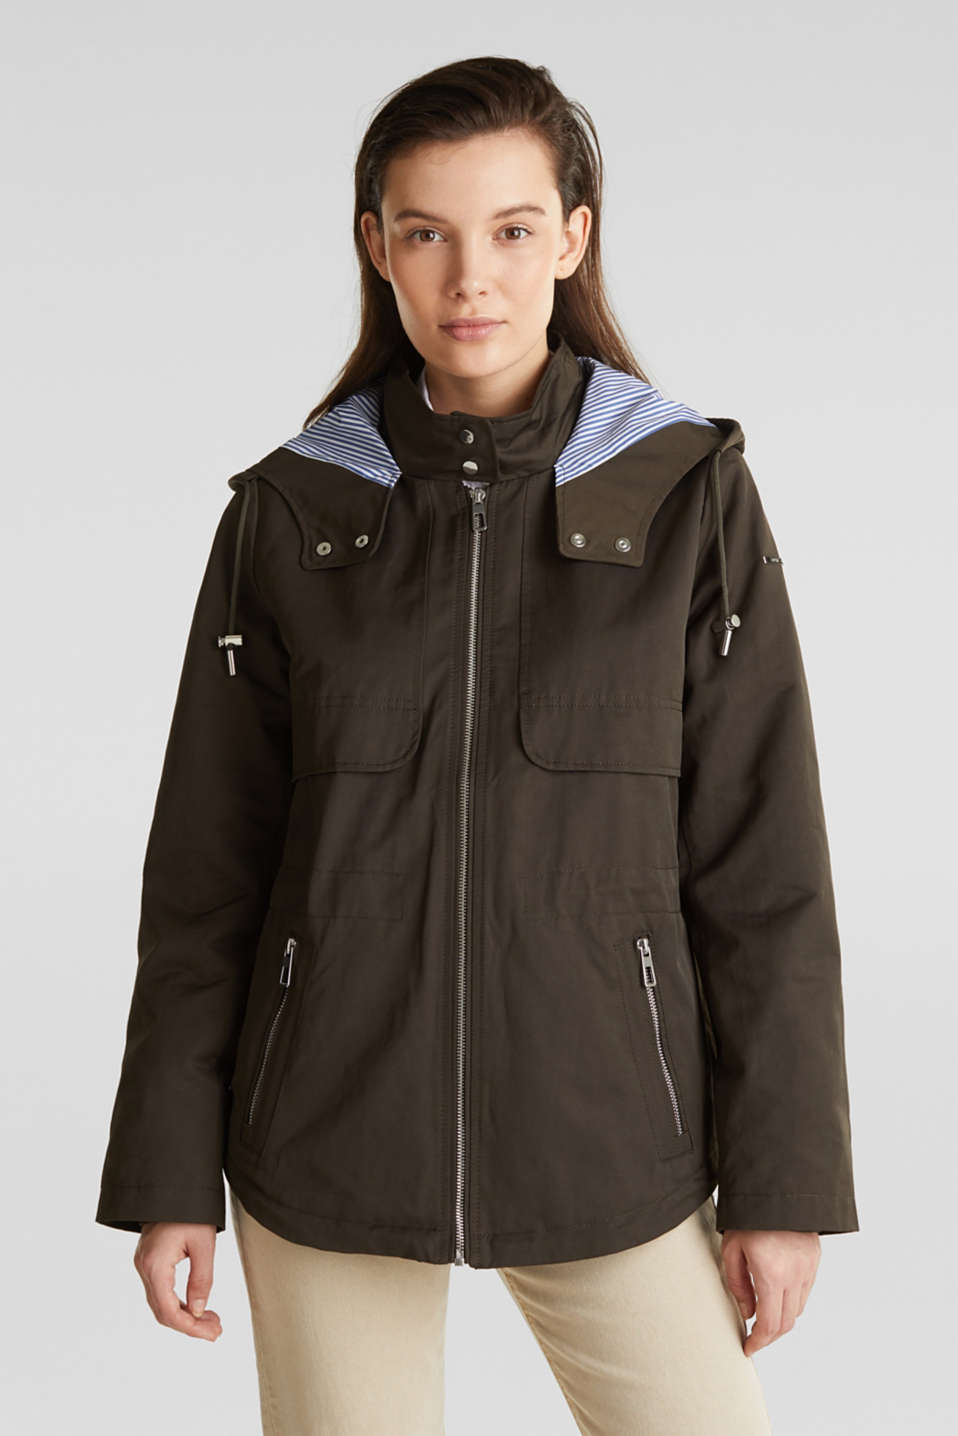 Esprit - Short parka with a hood